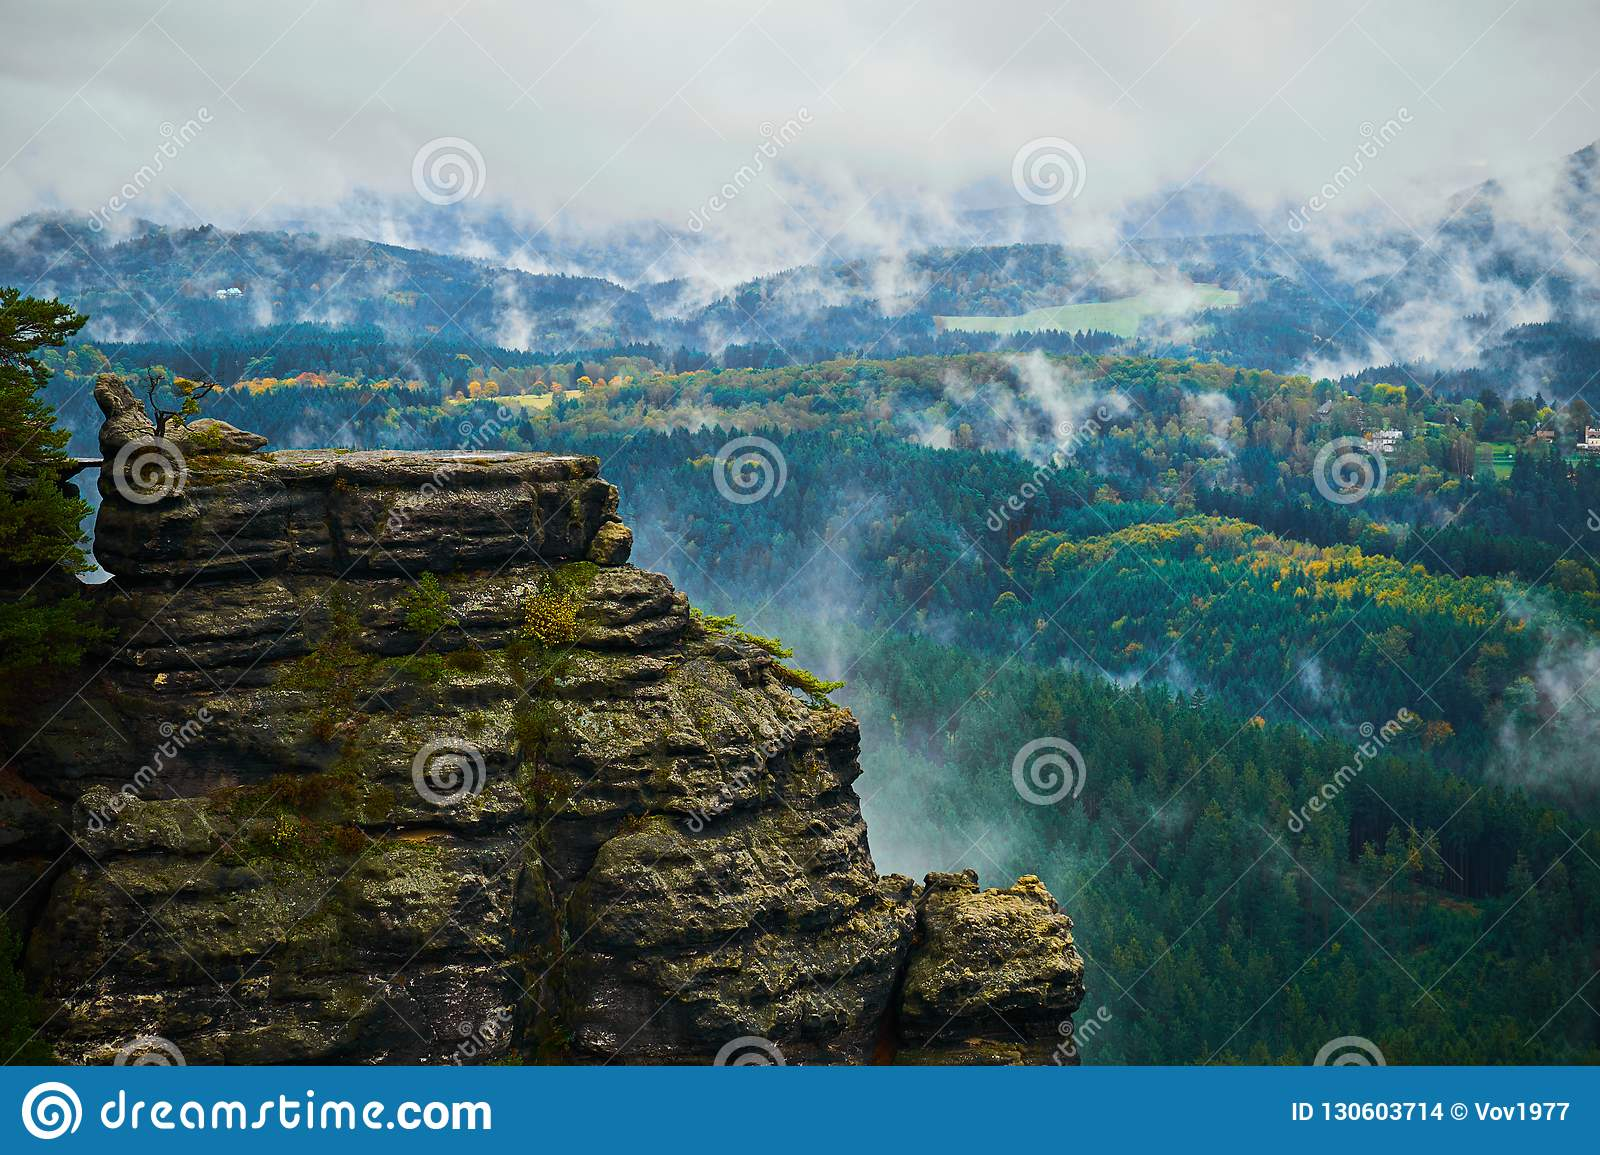 Misty Rainy Morning Landscape With The Sand Rocky Montains In Bohemian Saxon Switzerland In Autumn Colors Stock Photo Image Of Landscape Narnia 130603714